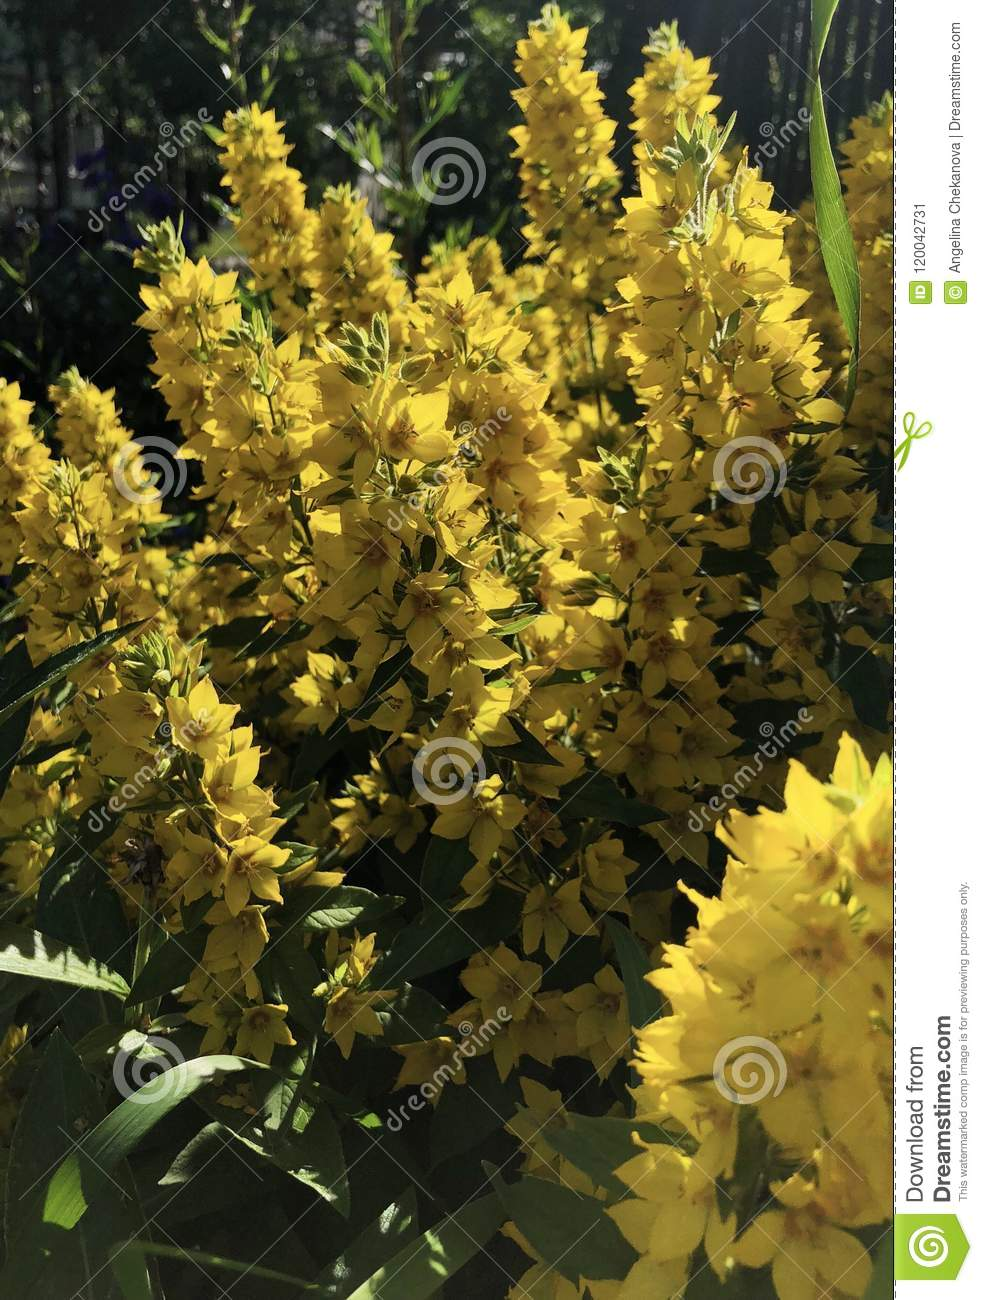 Fluffy yellow flower bushes of bells in the garden stock image fluffy yellow flower bushes of bells in the garden mightylinksfo